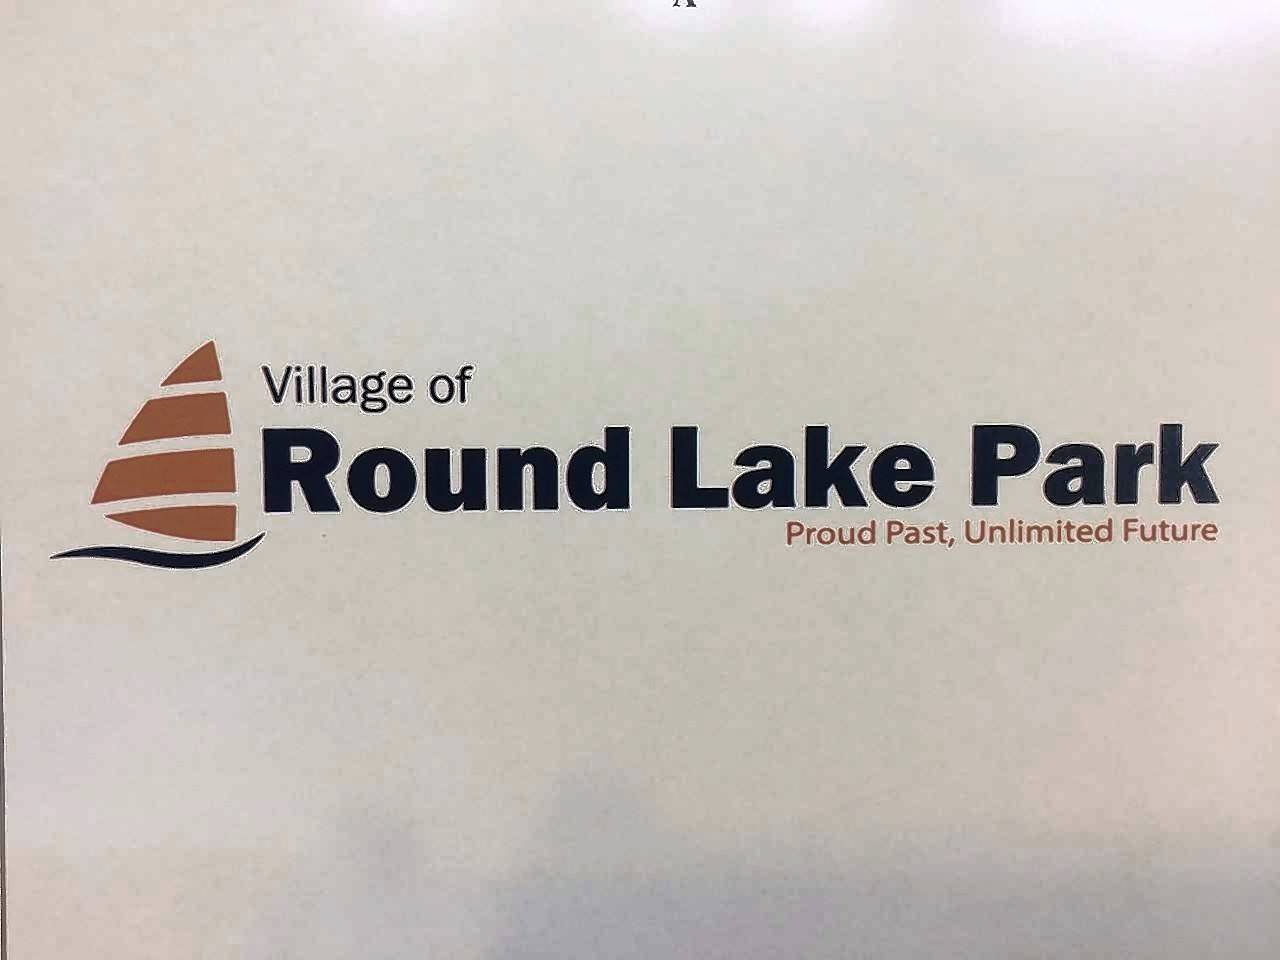 New logo, slogan part of campaign to rebrand Round Lake Park